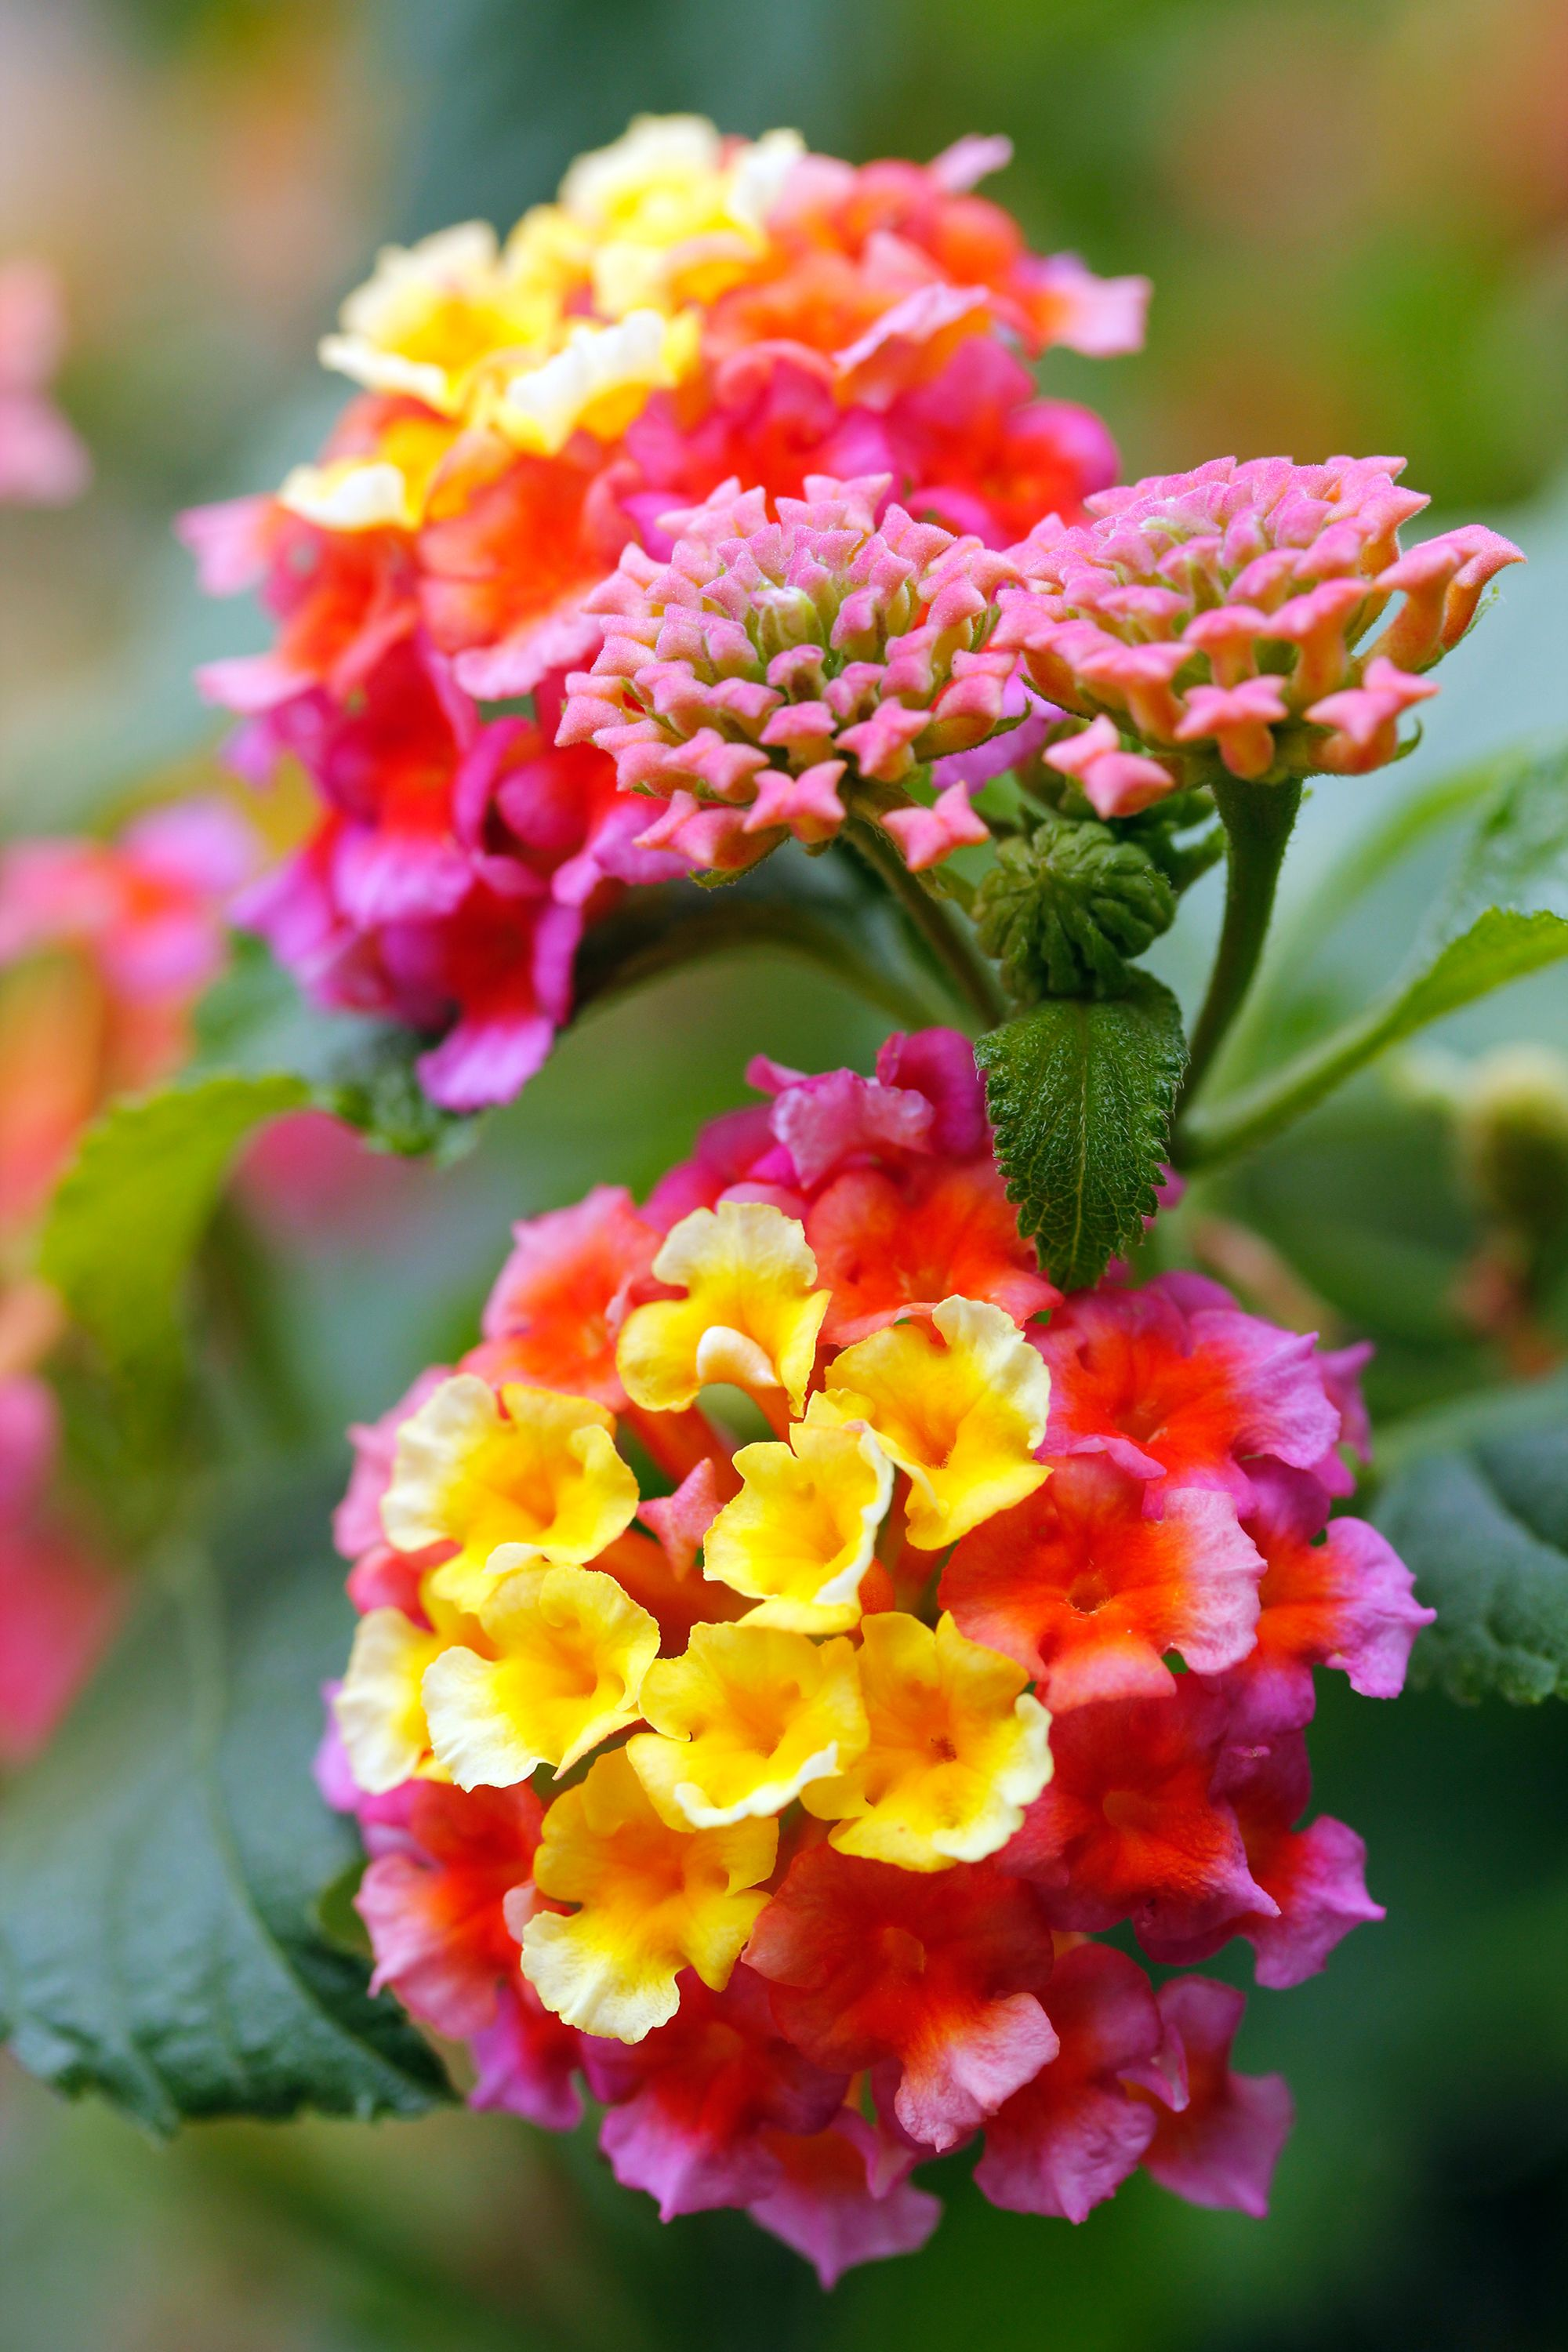 Lantana Flowers In Yellow Orange And Pink Colors F5 Jpg 2000 3000 Flores Flores Naturais Belas Flores